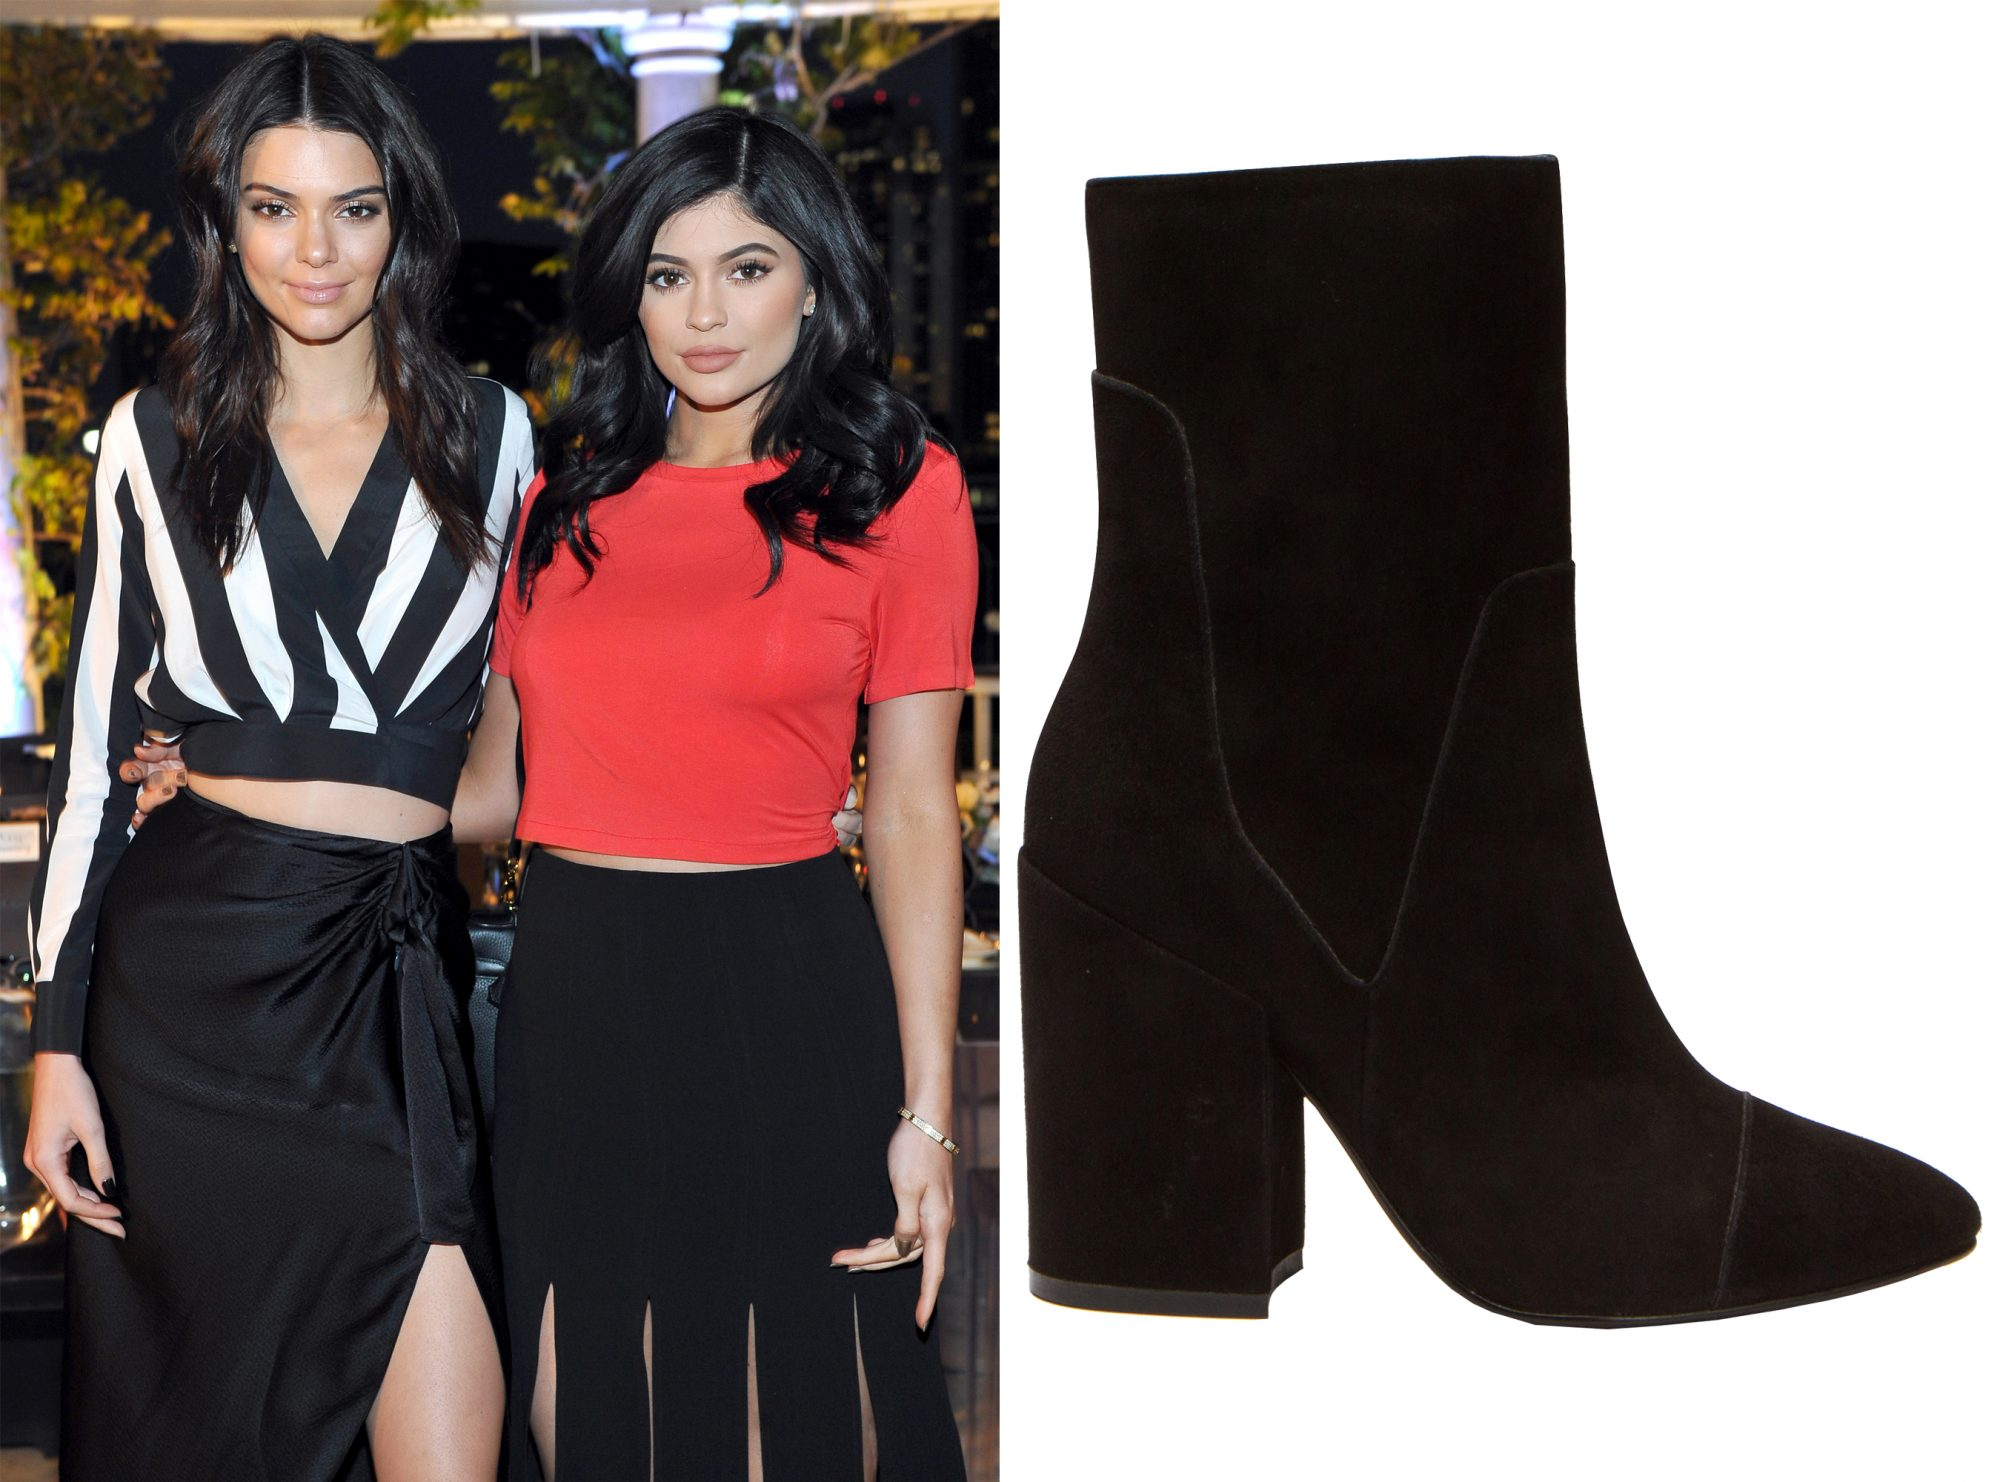 <p>KENDALL + KYLIE: Kylie Jenner & Kendall Jenner</p>